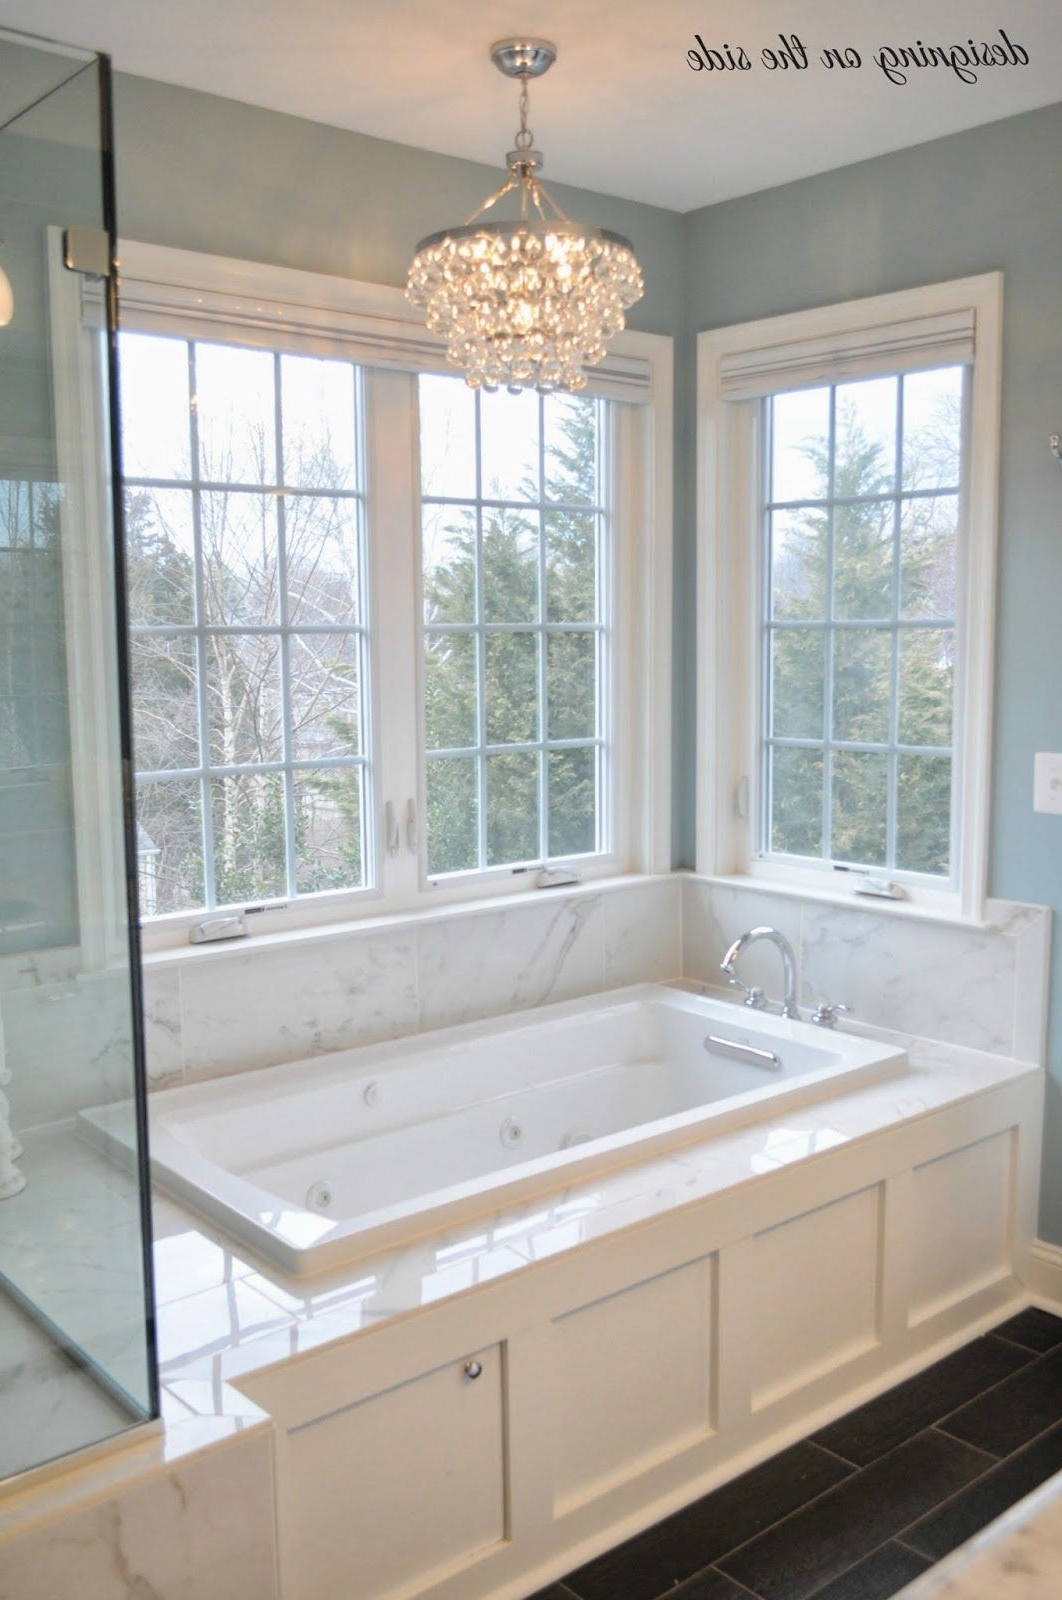 Famous Master Bath, Marble Tile, Sw Rain, Crystal Chandelier, Tile That Throughout Crystal Chandelier Bathroom Lighting (View 8 of 15)